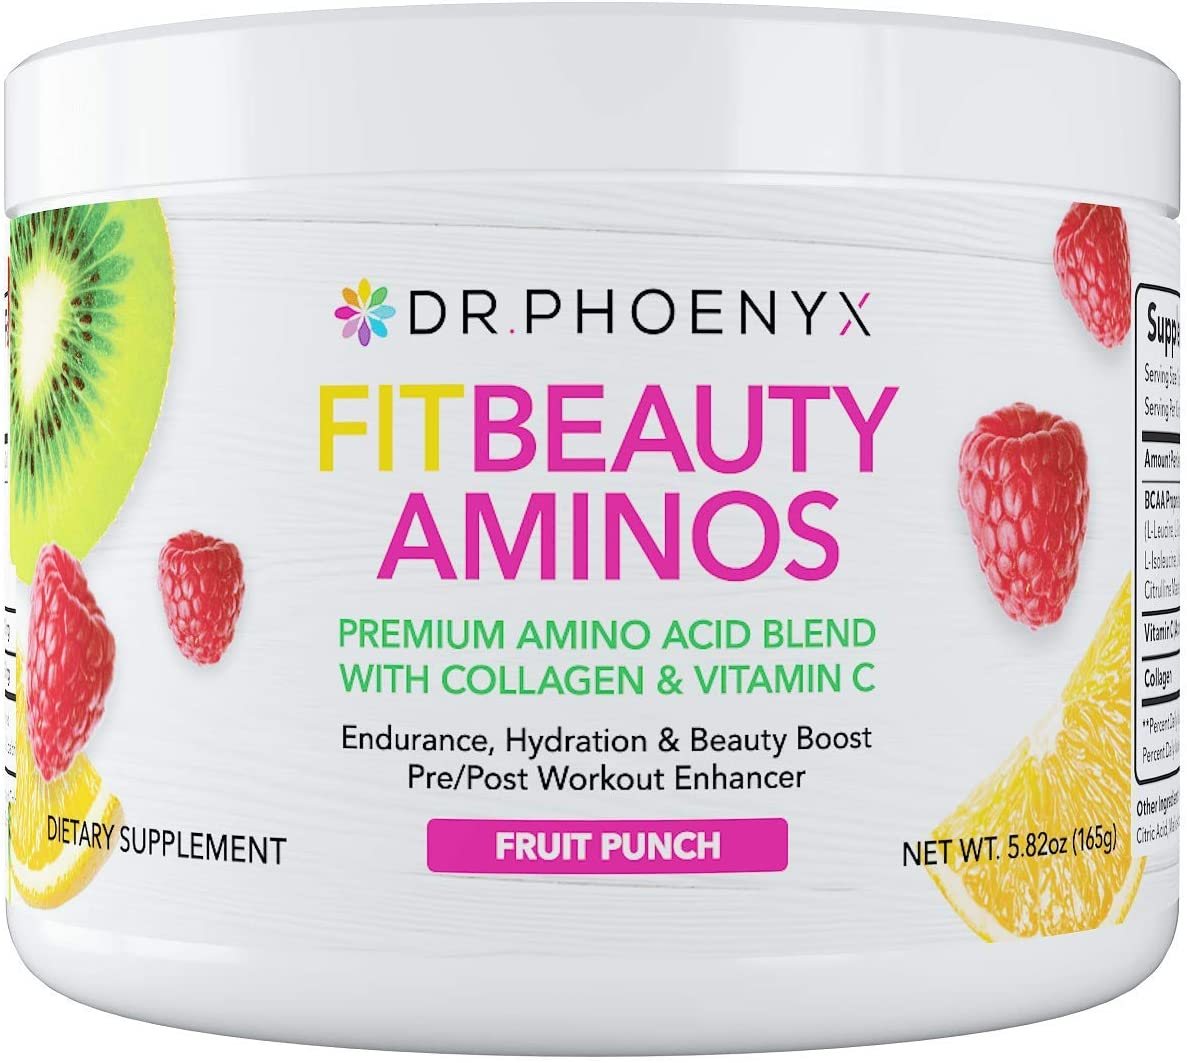 Dr. Phoenyx FitBeauty Amino Acid Blend with Collagen Vitamin C – Hydration Boost, Healthy Metabolism, Healthy Skin – Keto Friendly Drink Mix – Fruit Punch, 30 Servings